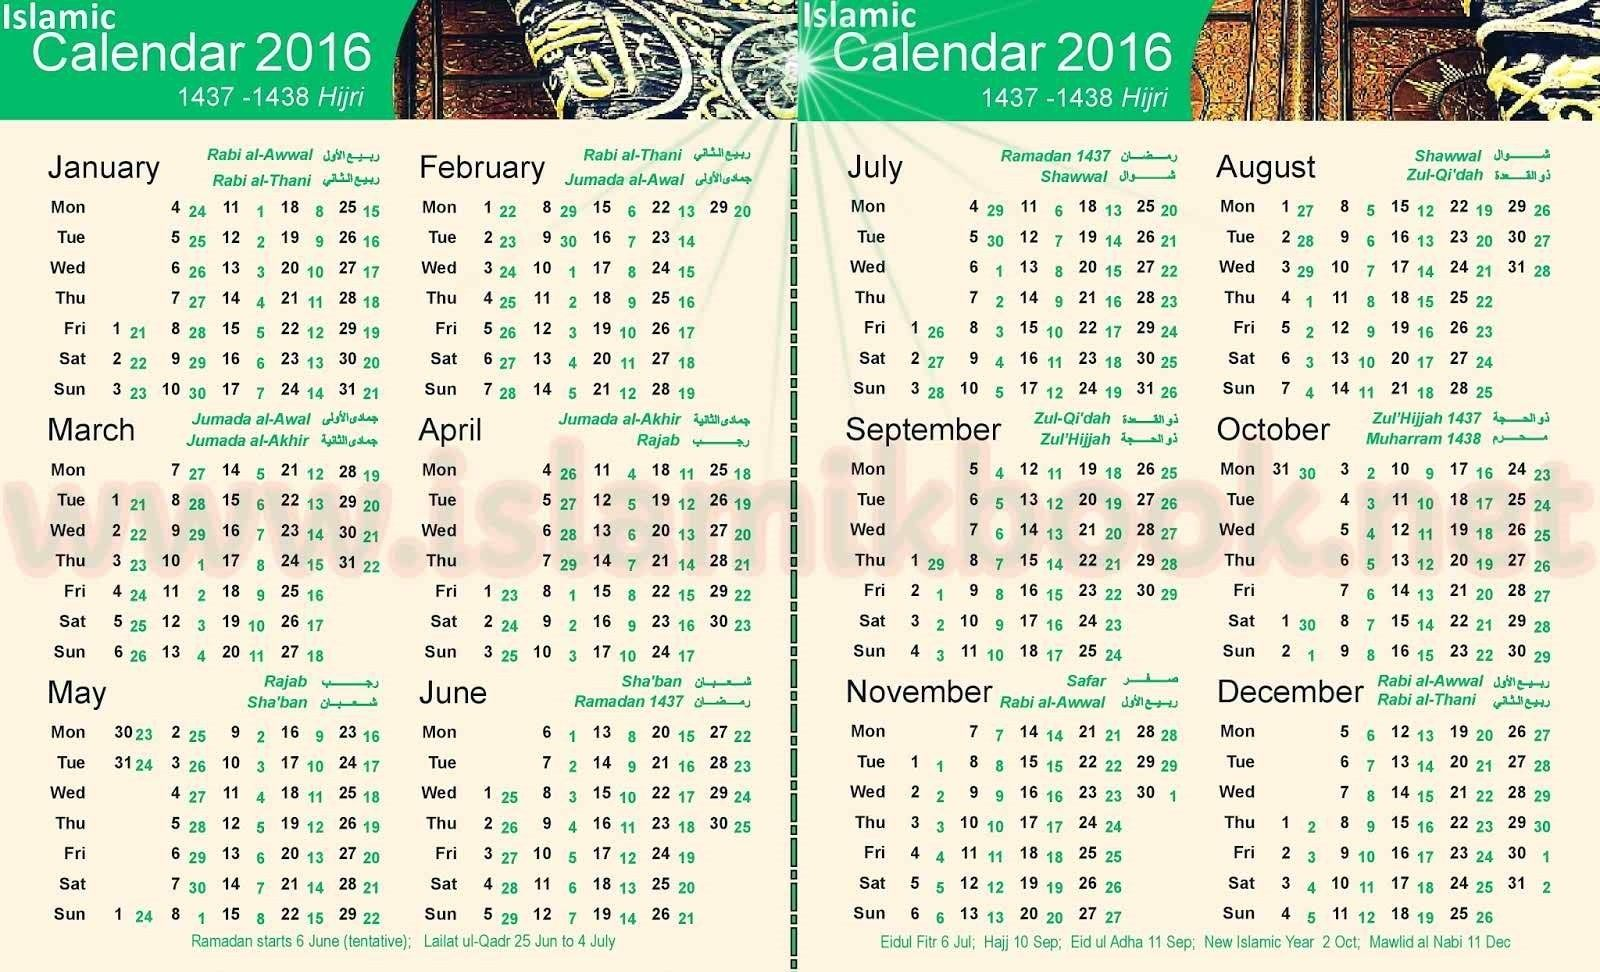 Moon Phase Calendar December 2017 Upcoming Cars 2020 Free Islamic Calendar Hijri Calendar Islamic Calendar 2016